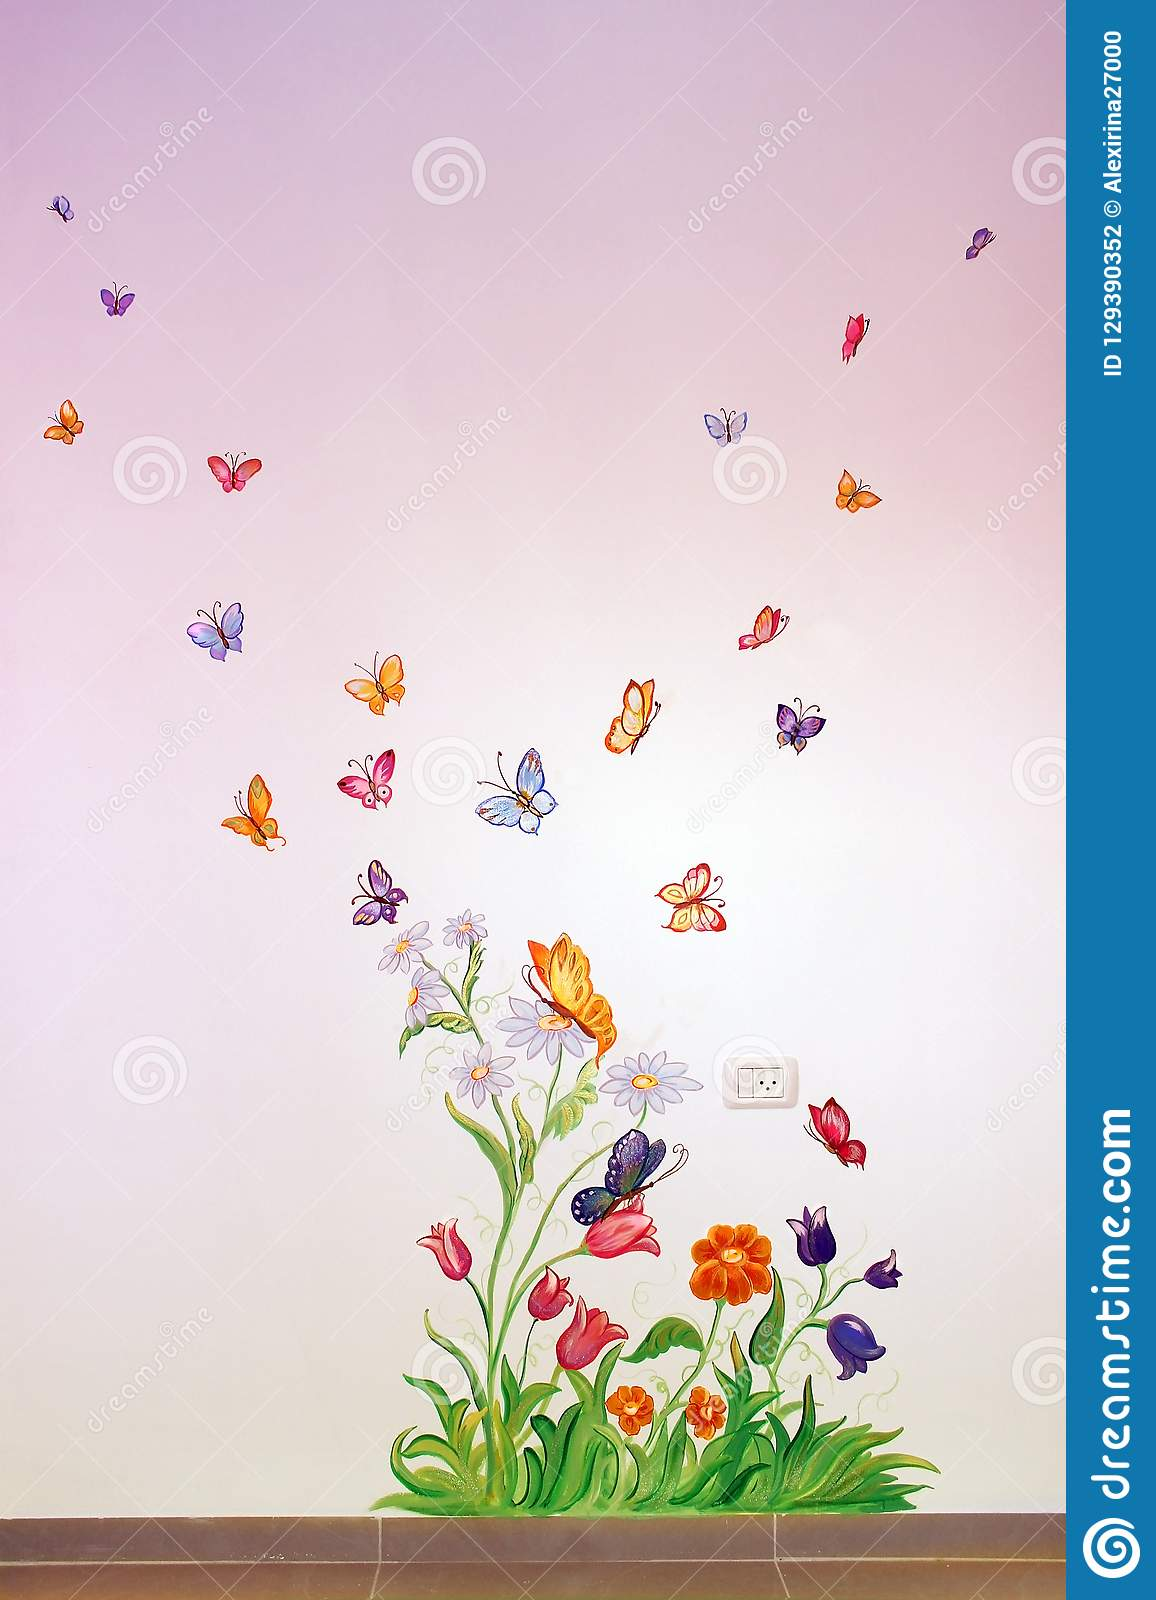 Butterflies and flowers, picture on the wall in the nursery